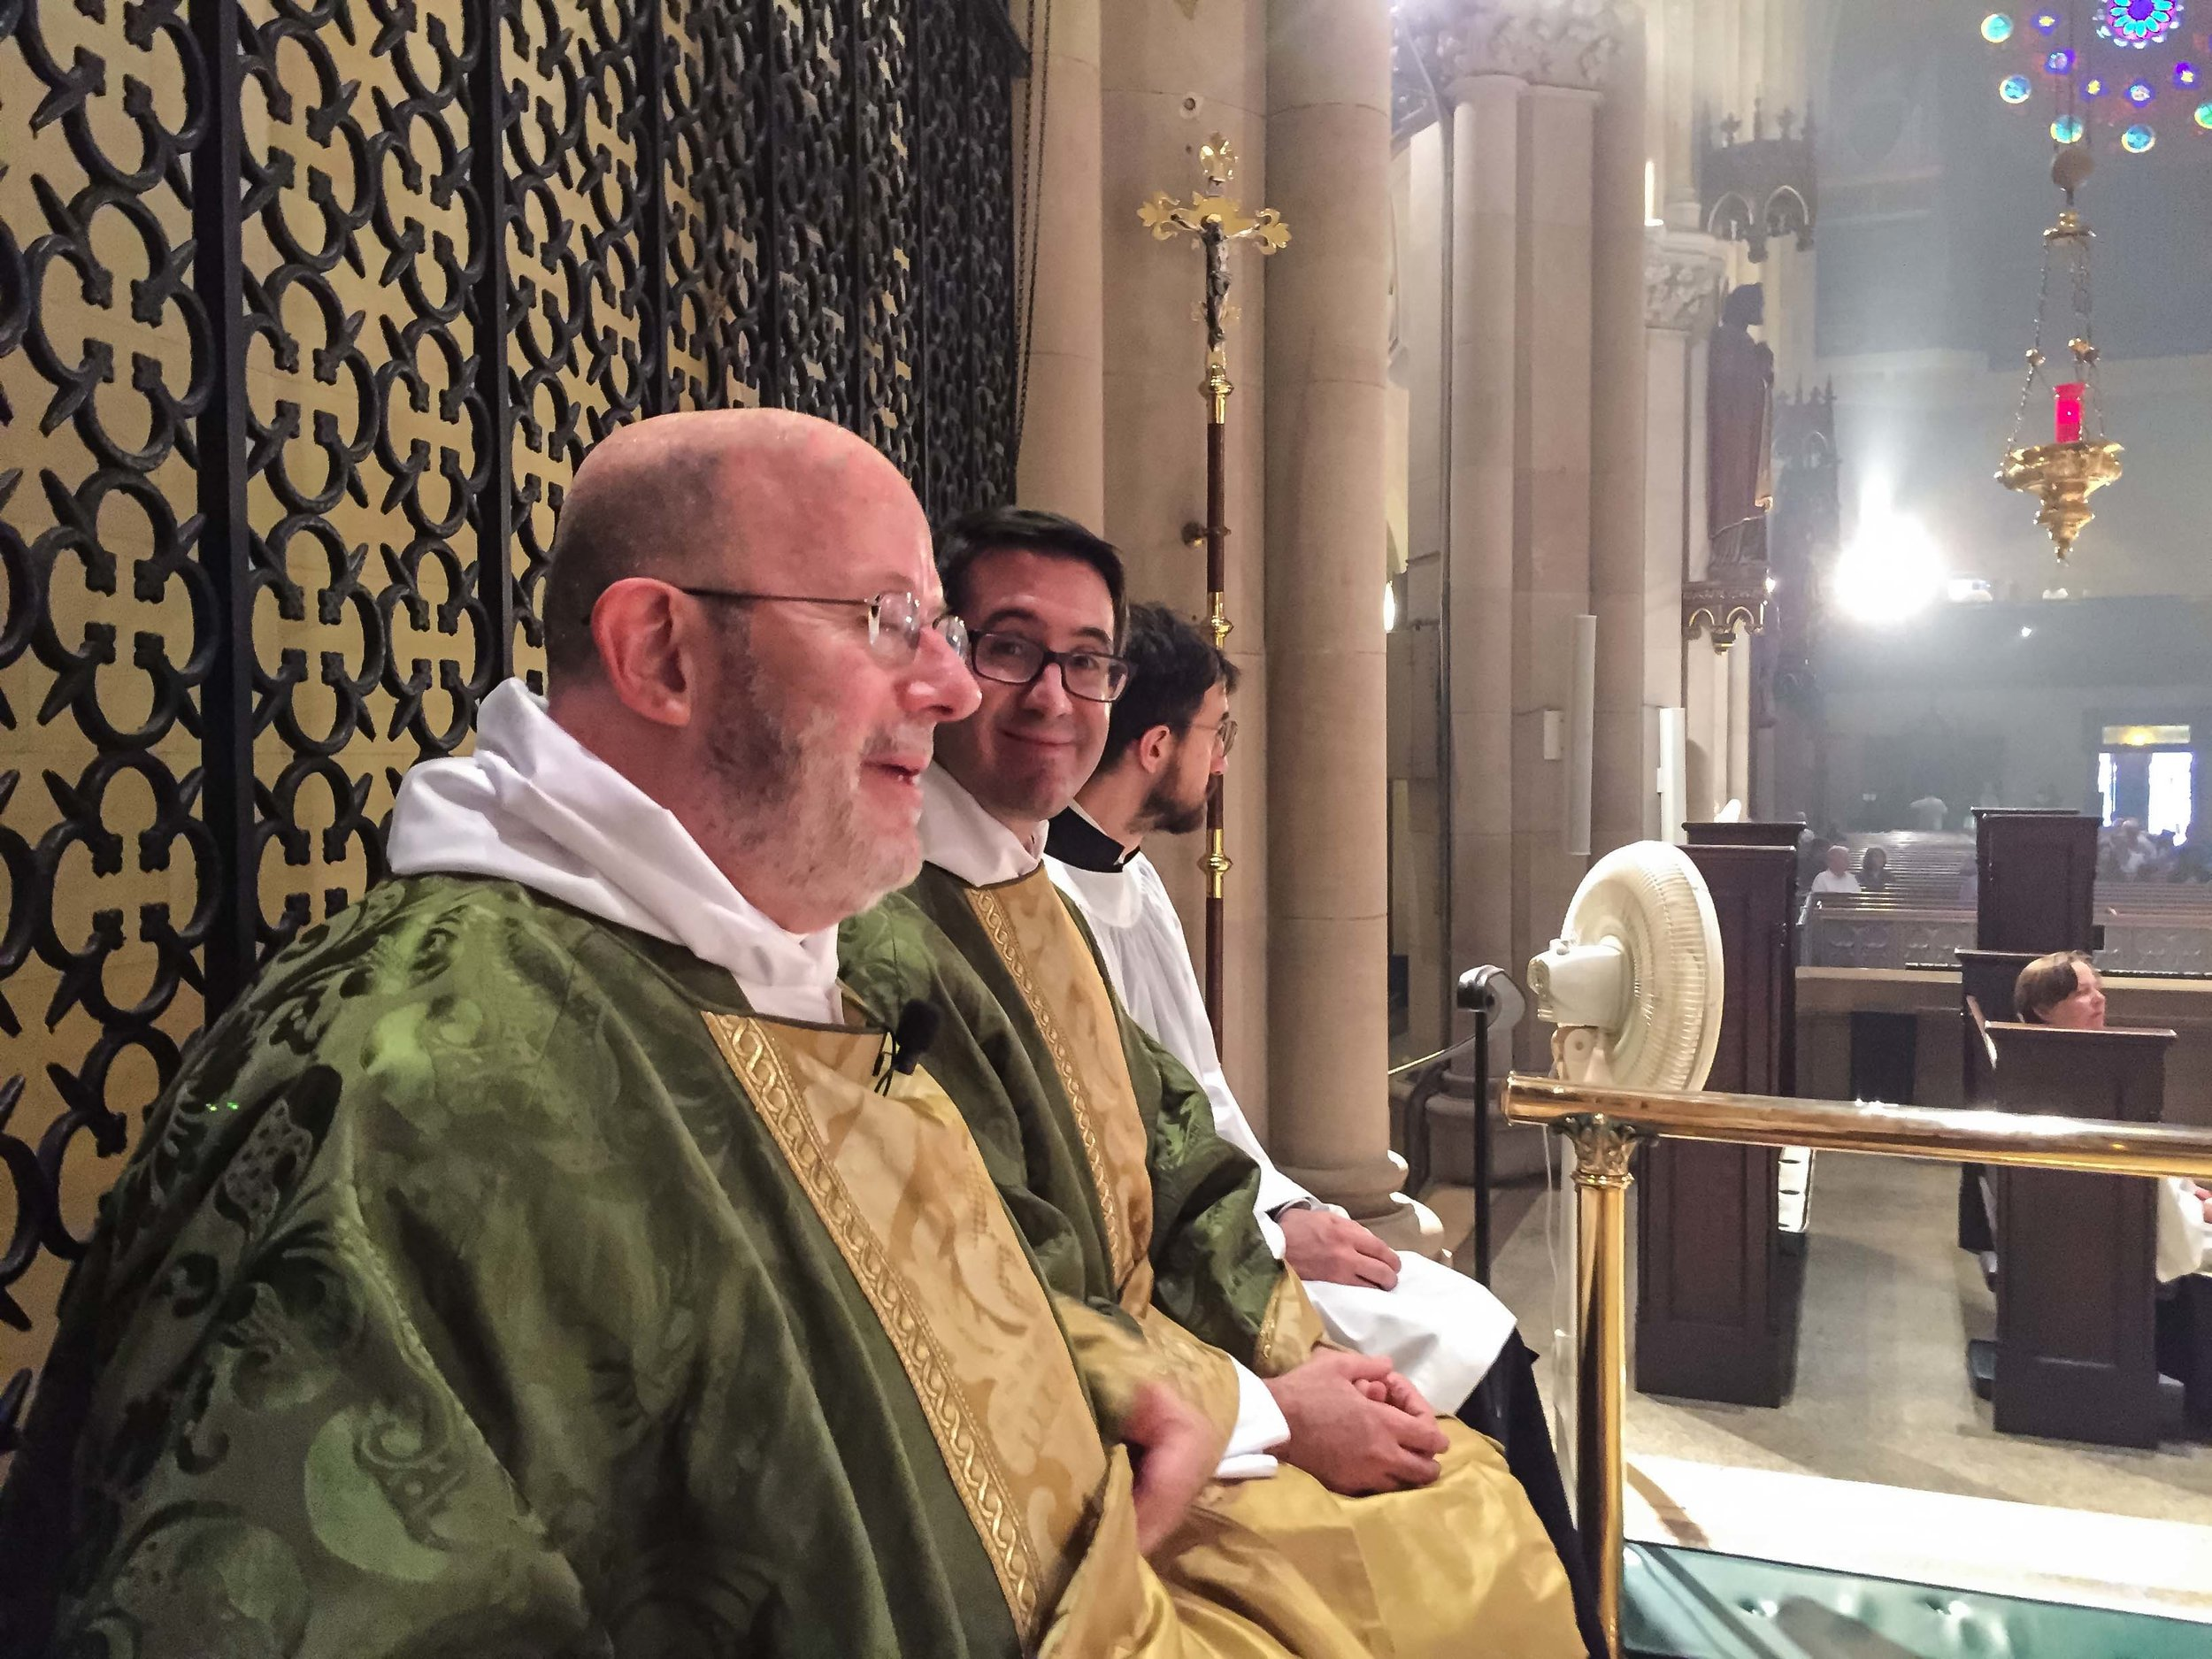 Father Smith was celebrant and preacher at Solemn Mass.